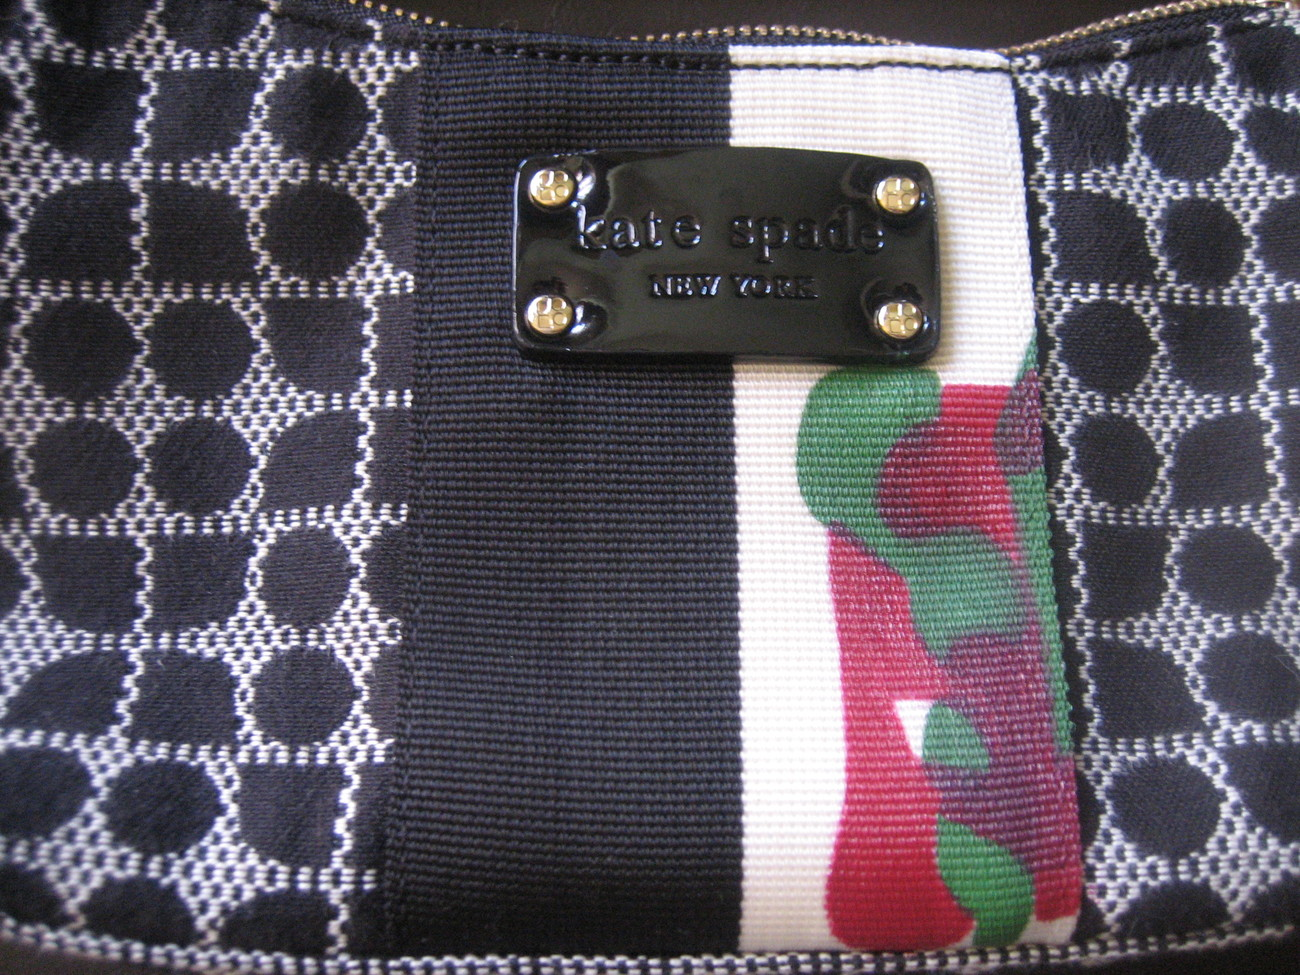 Vintage-Kate Spade-Handpainted Abstract-Small Black&White Signature Fabric Bag